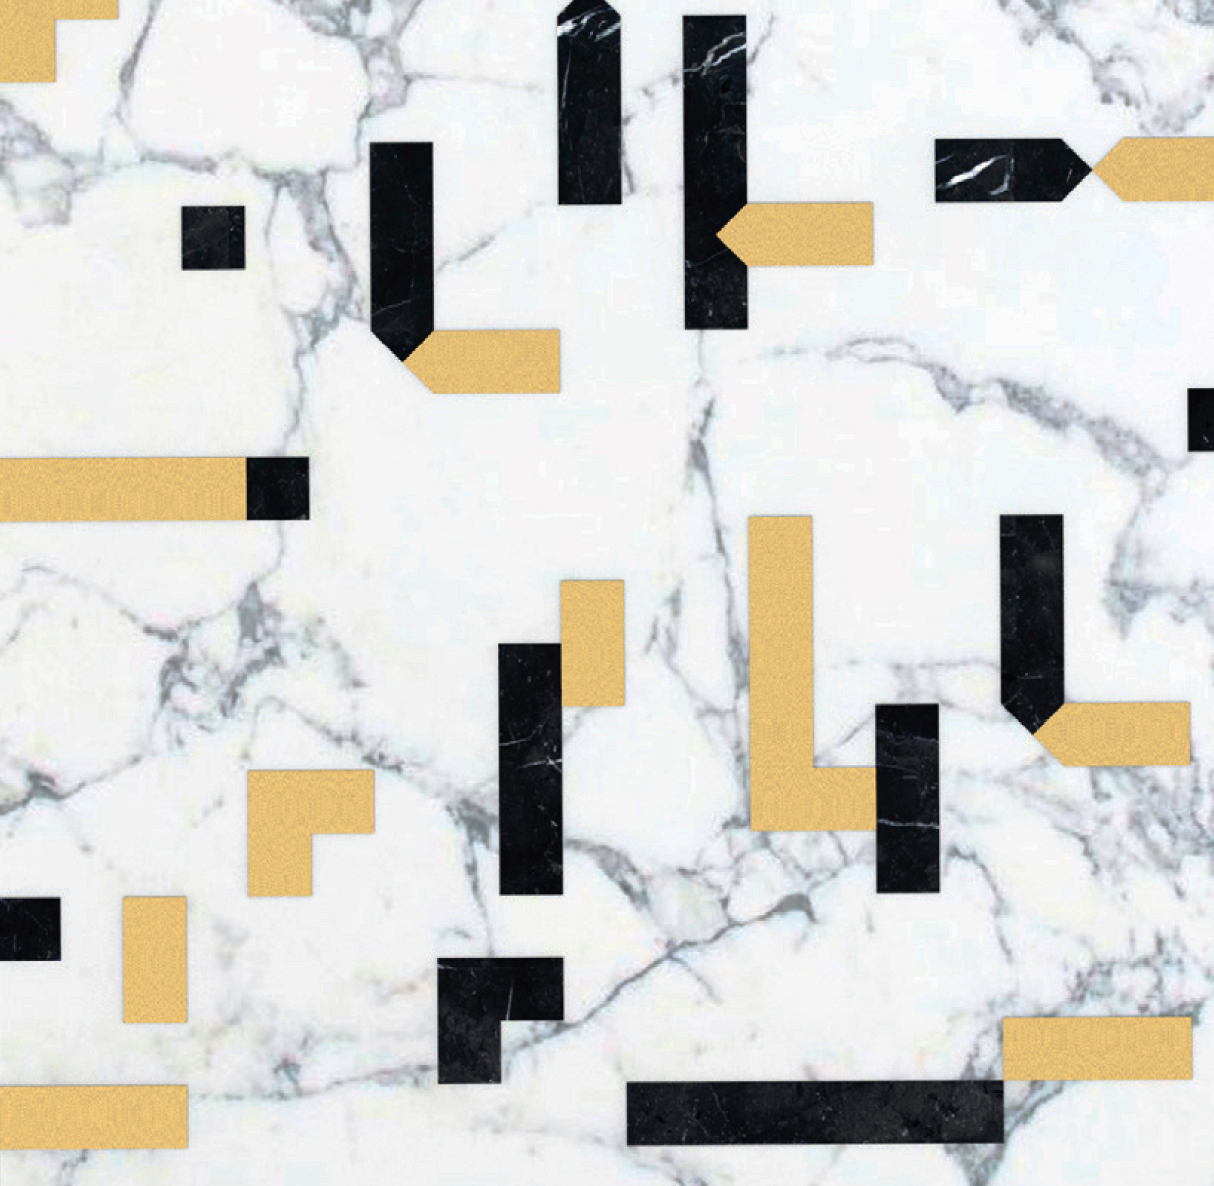 Pixel White - Ma.C.S. combines artisan crafted production with industrial processing powered by numerical control machines. This is demonstrated by the new marble inlay covering collection. The research aims to integrate the classical idea of marble inlay (combined in some cases with other materials such as wood and metal), with shapes, compositions and innovative, charming designs. All of that is rigorously made in Italy.  The 2017 collection is composed of tiles, large marble slabs and other architectural solutions. The design is characterised by both serial geometric sequences and eclectic surfaces, inspired by nature shapes and dreamlike dimensions.  The proposed coverings, both horizontal and vertical ones, are fully customizable in size and colors, according to client needs. | Matter of Stuff